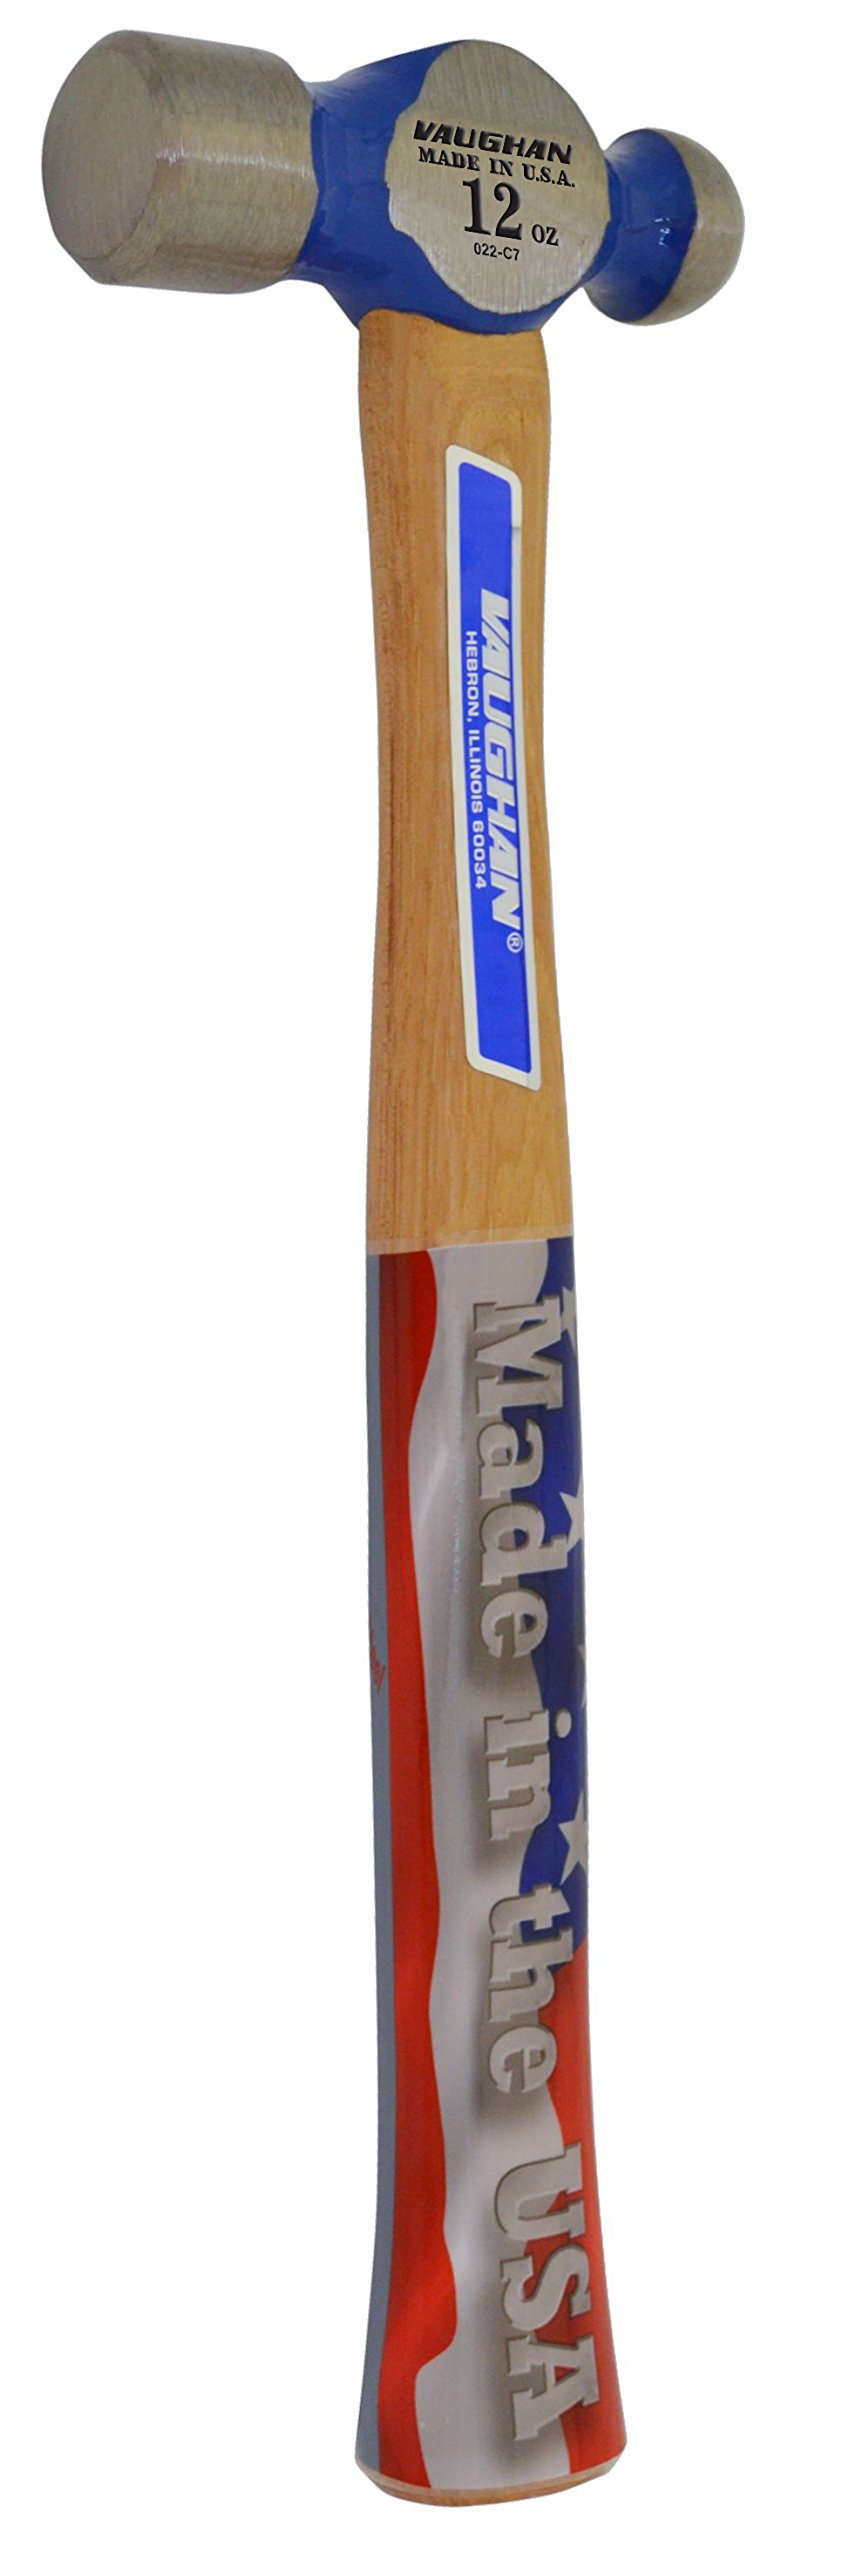 Vaughan TC2012 12-Ounce Commercial Ball Pein Hammer by Vaughan